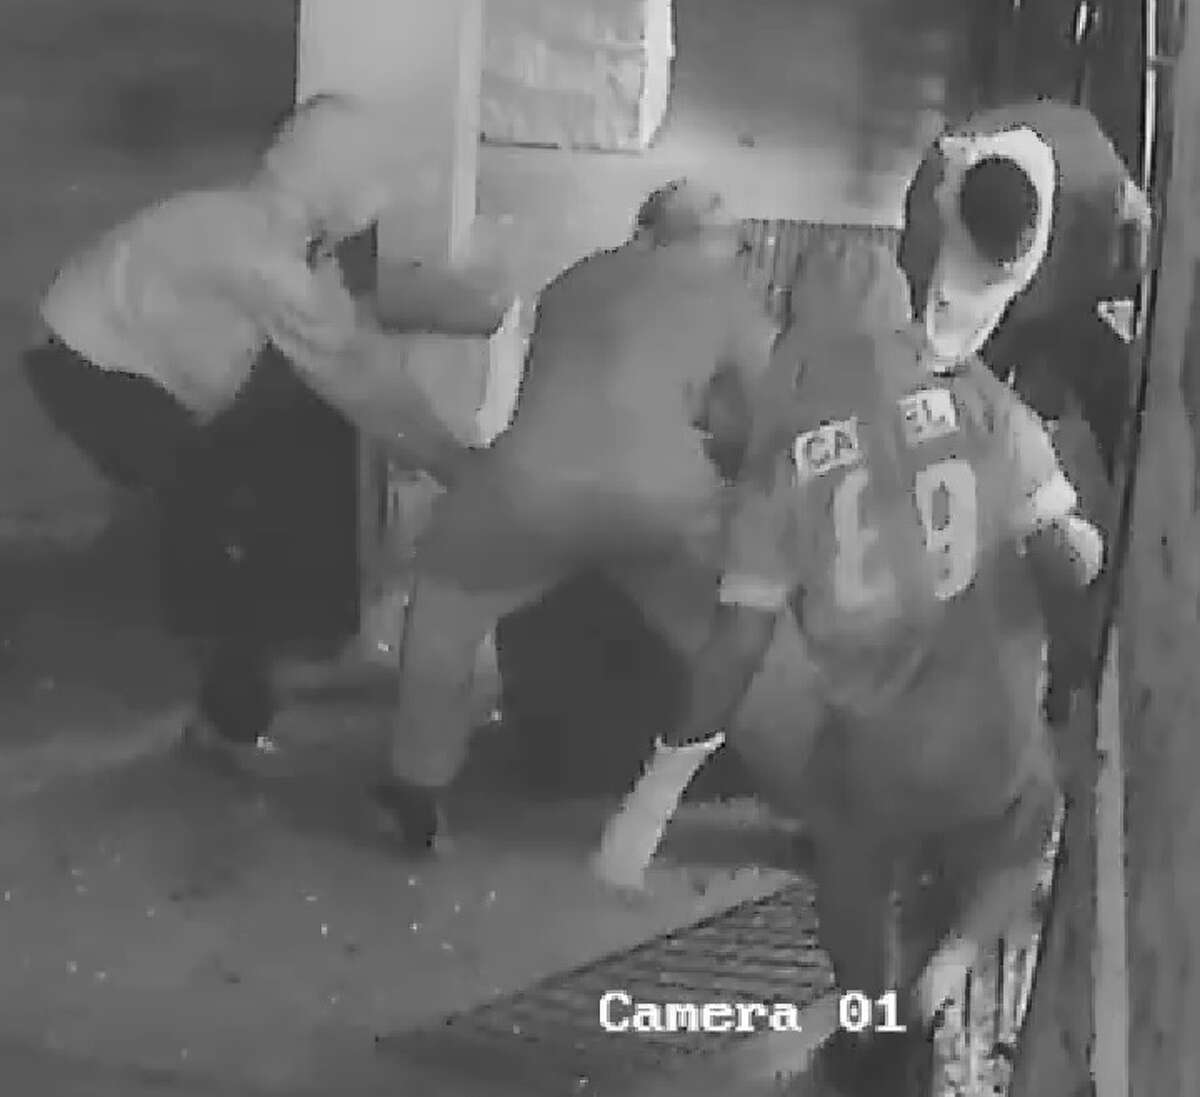 Fort Bend County Crime Stoppers will pay a cash reward for information that leads to the arrest of the perpetrators involved in a burglary of a building.